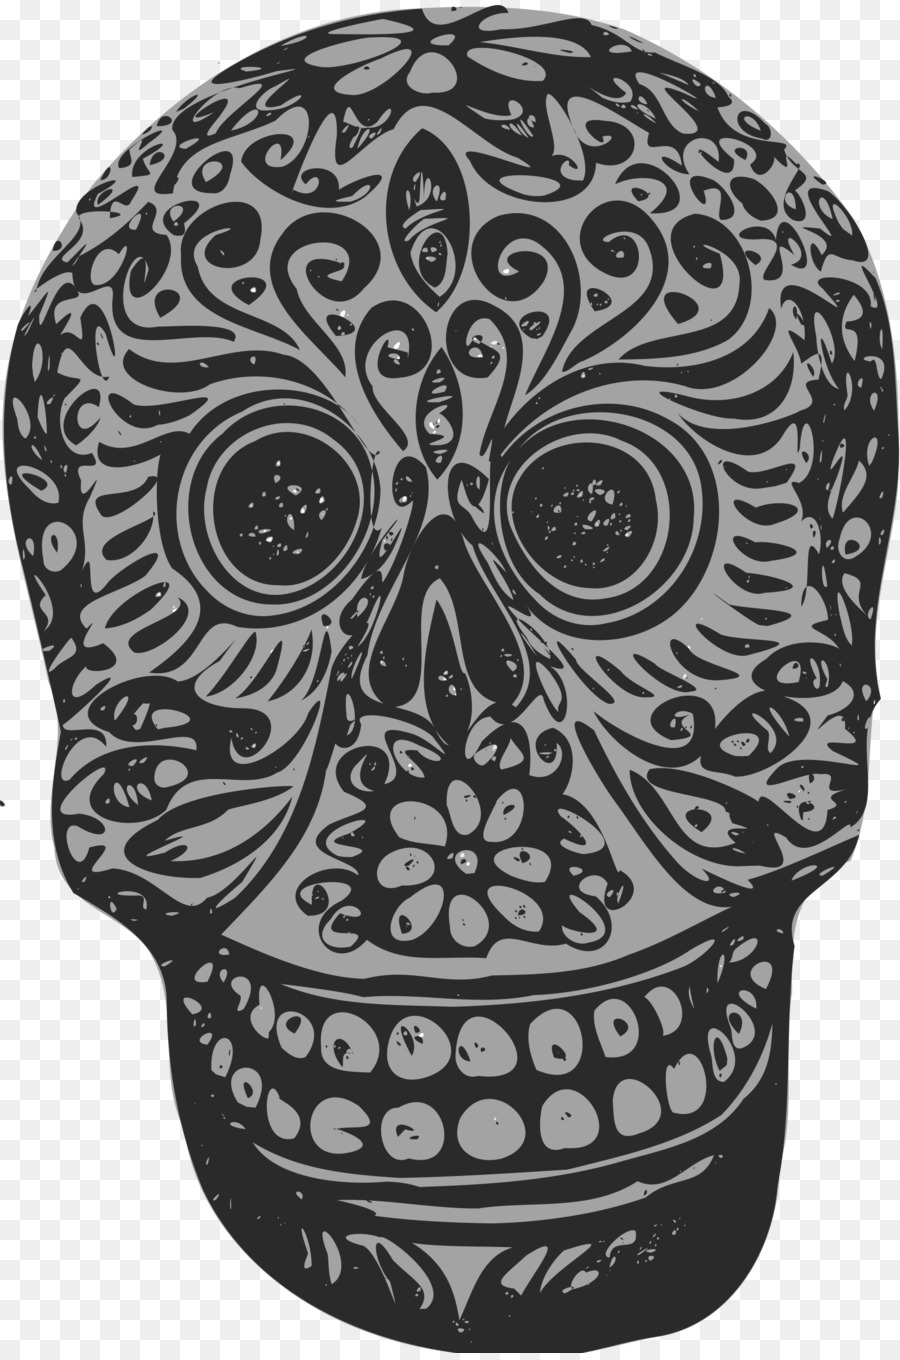 Altar with skull clipart vector free download Human Skull Drawing png download - 1596*2400 - Free Transparent ... vector free download